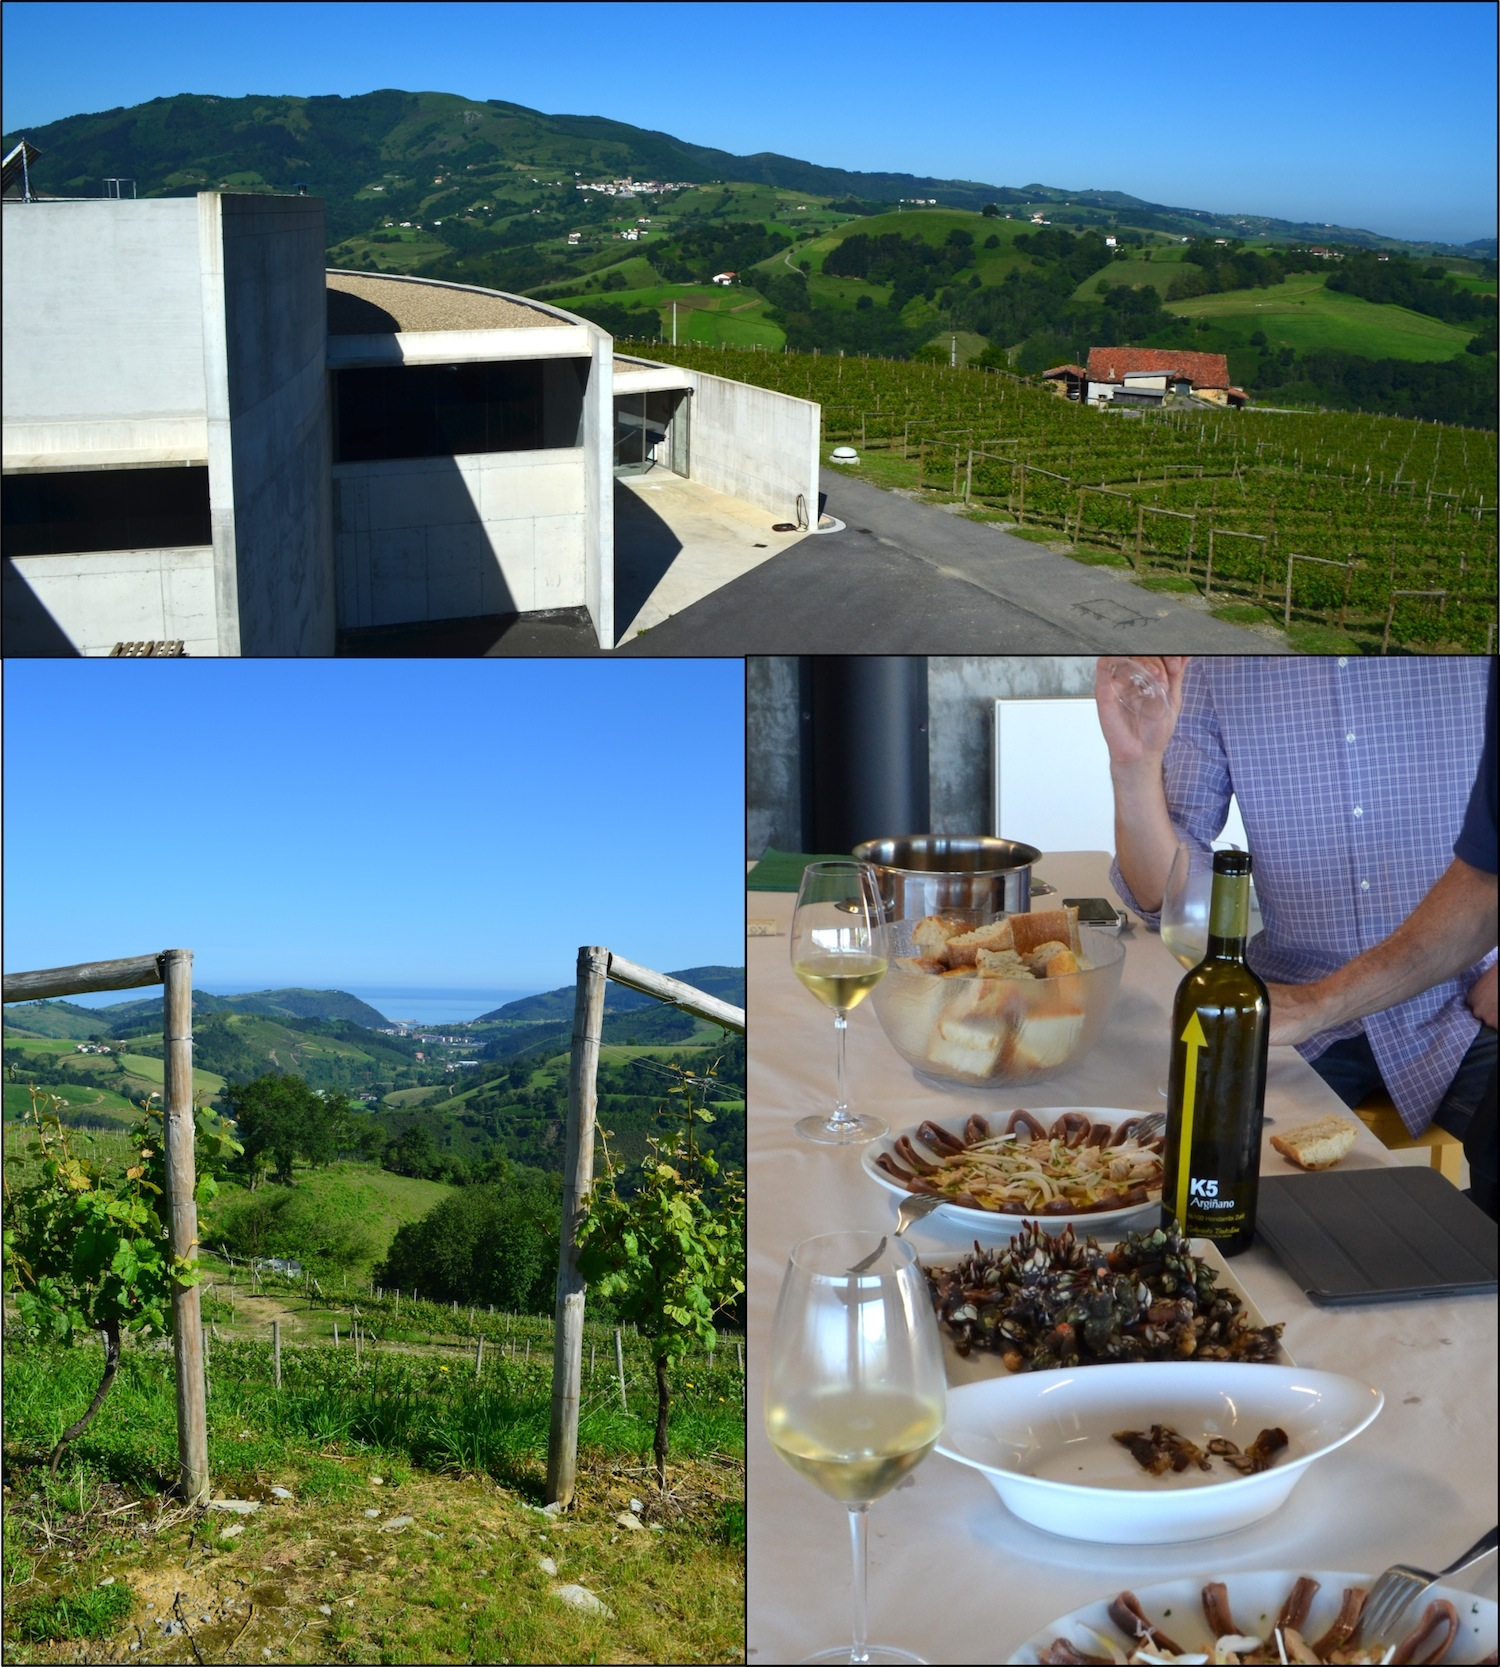 Modern, gravity-flow bodega and immaculate vineyards overlooking the Cantabrian Sea. K5 blooming and blossoming with fresh anchovies, jamón ibérico and Cantabrian percebes (barnacles)!